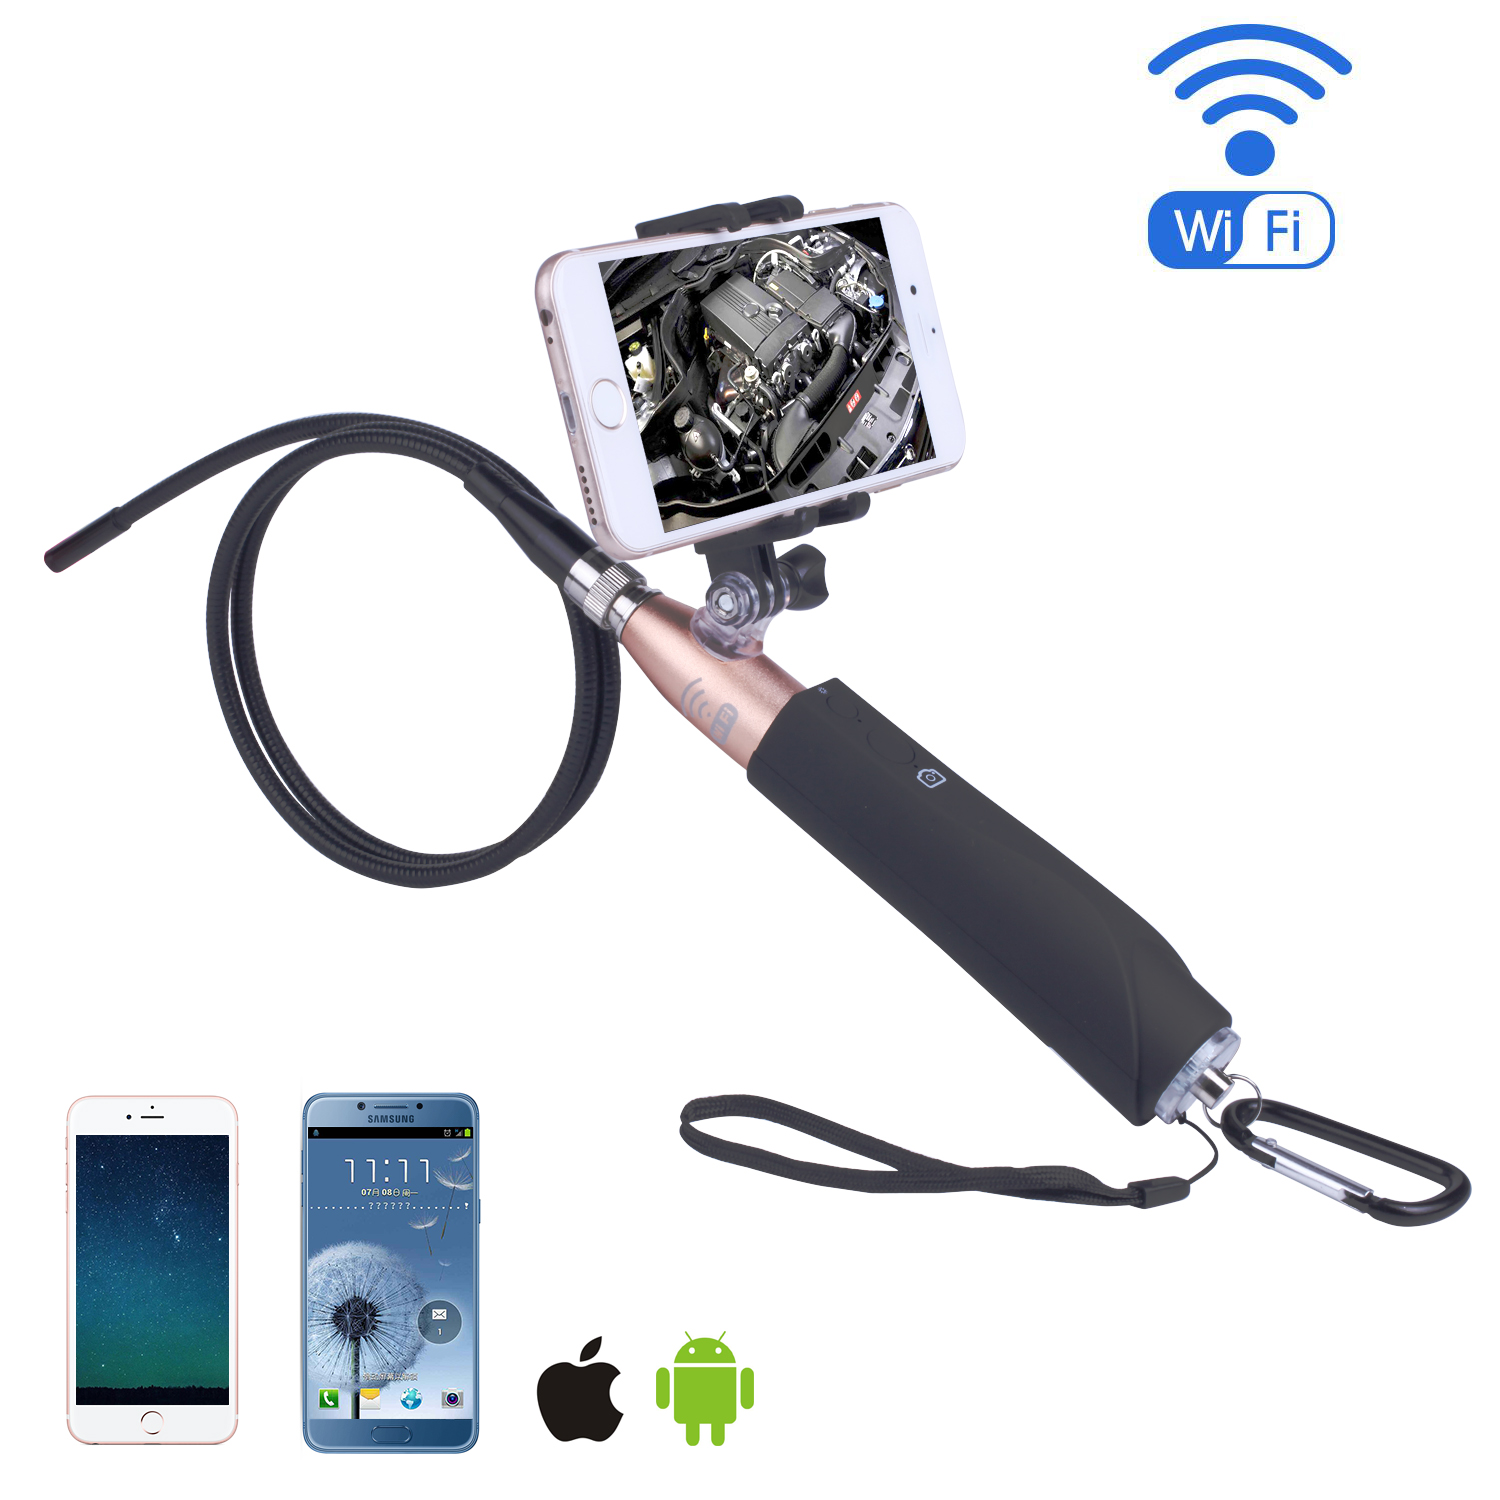 HD 720P Wireless WIFI Endoscope 2.0 Mega Pixels Inspection Snake Camera 1M/3M Cable 8mm 6 LED Borescope for Android Iphone Spy image